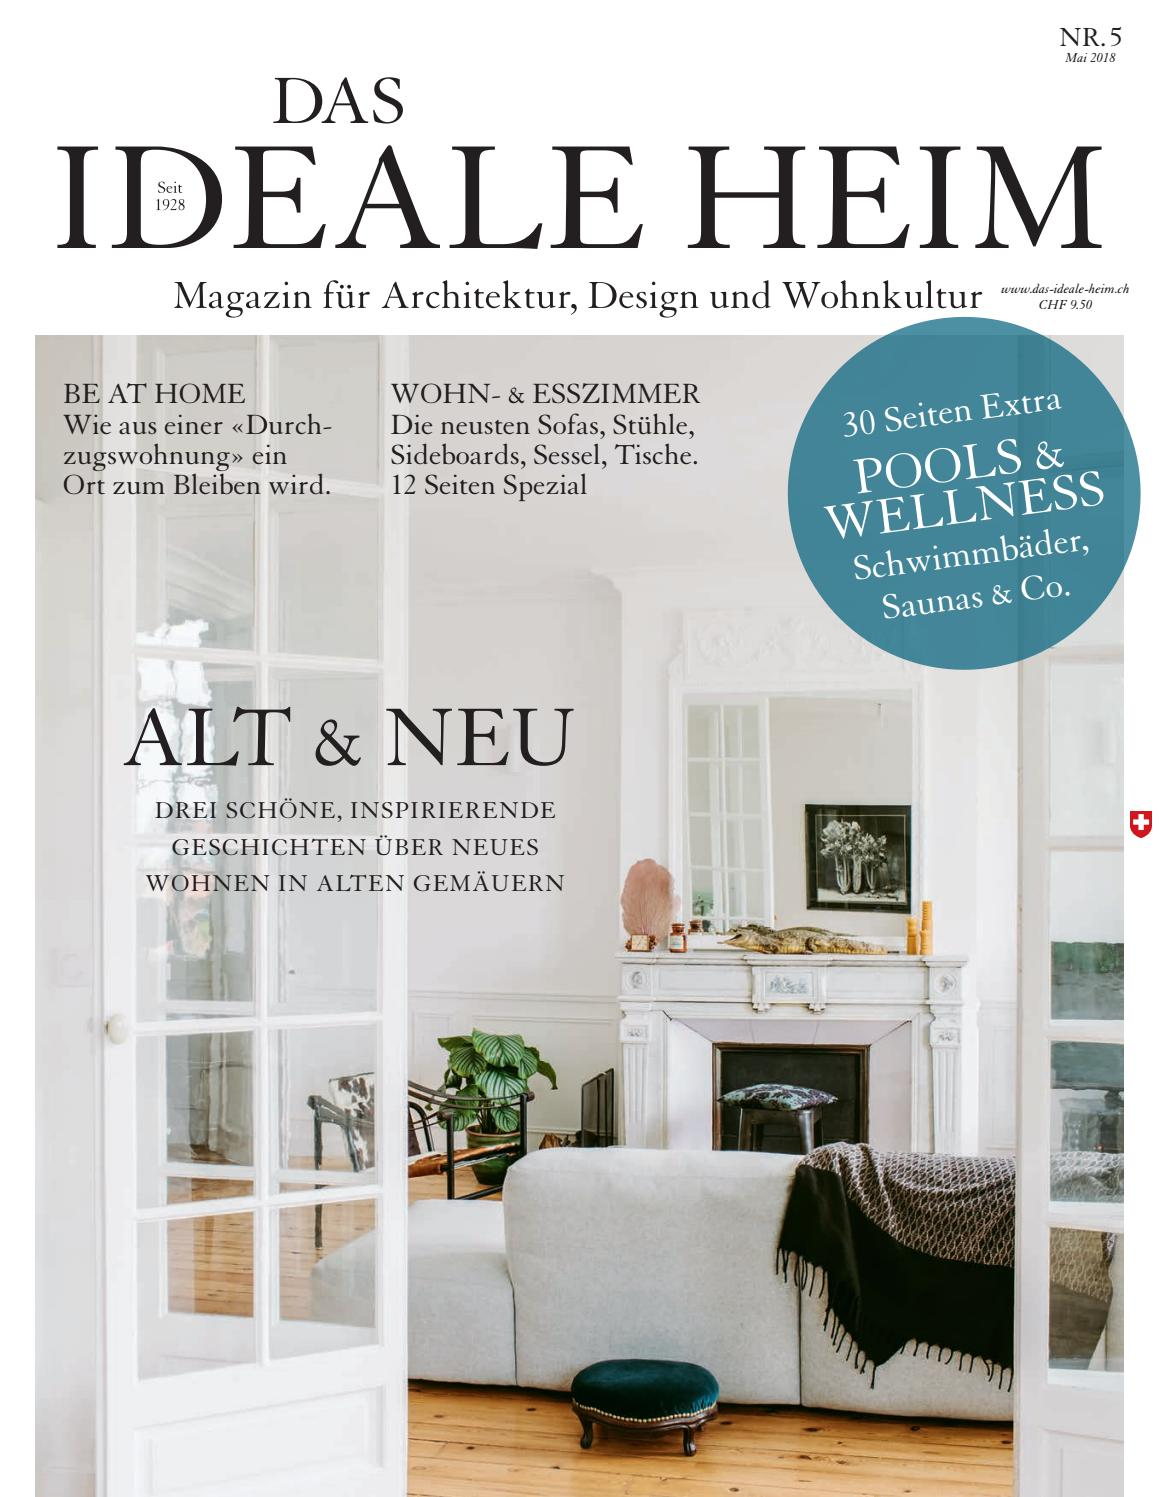 Das Ideale Heim 05/2018 by Archithema Verlag - issuu